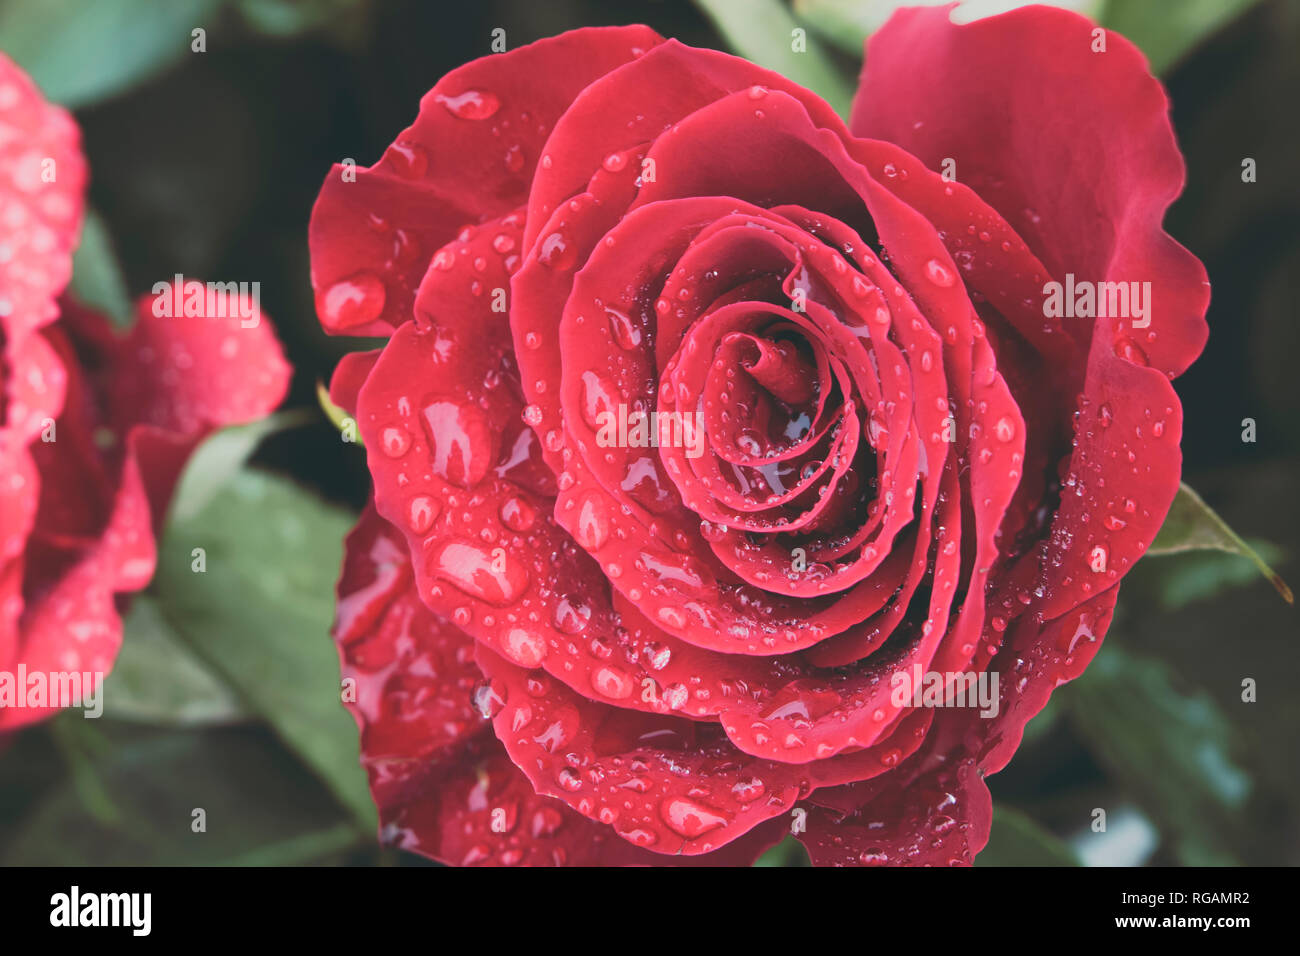 Close up of beautiful red rose in full bloom covered in water droplets from morning dew. Love and romantic concept. - Stock Image